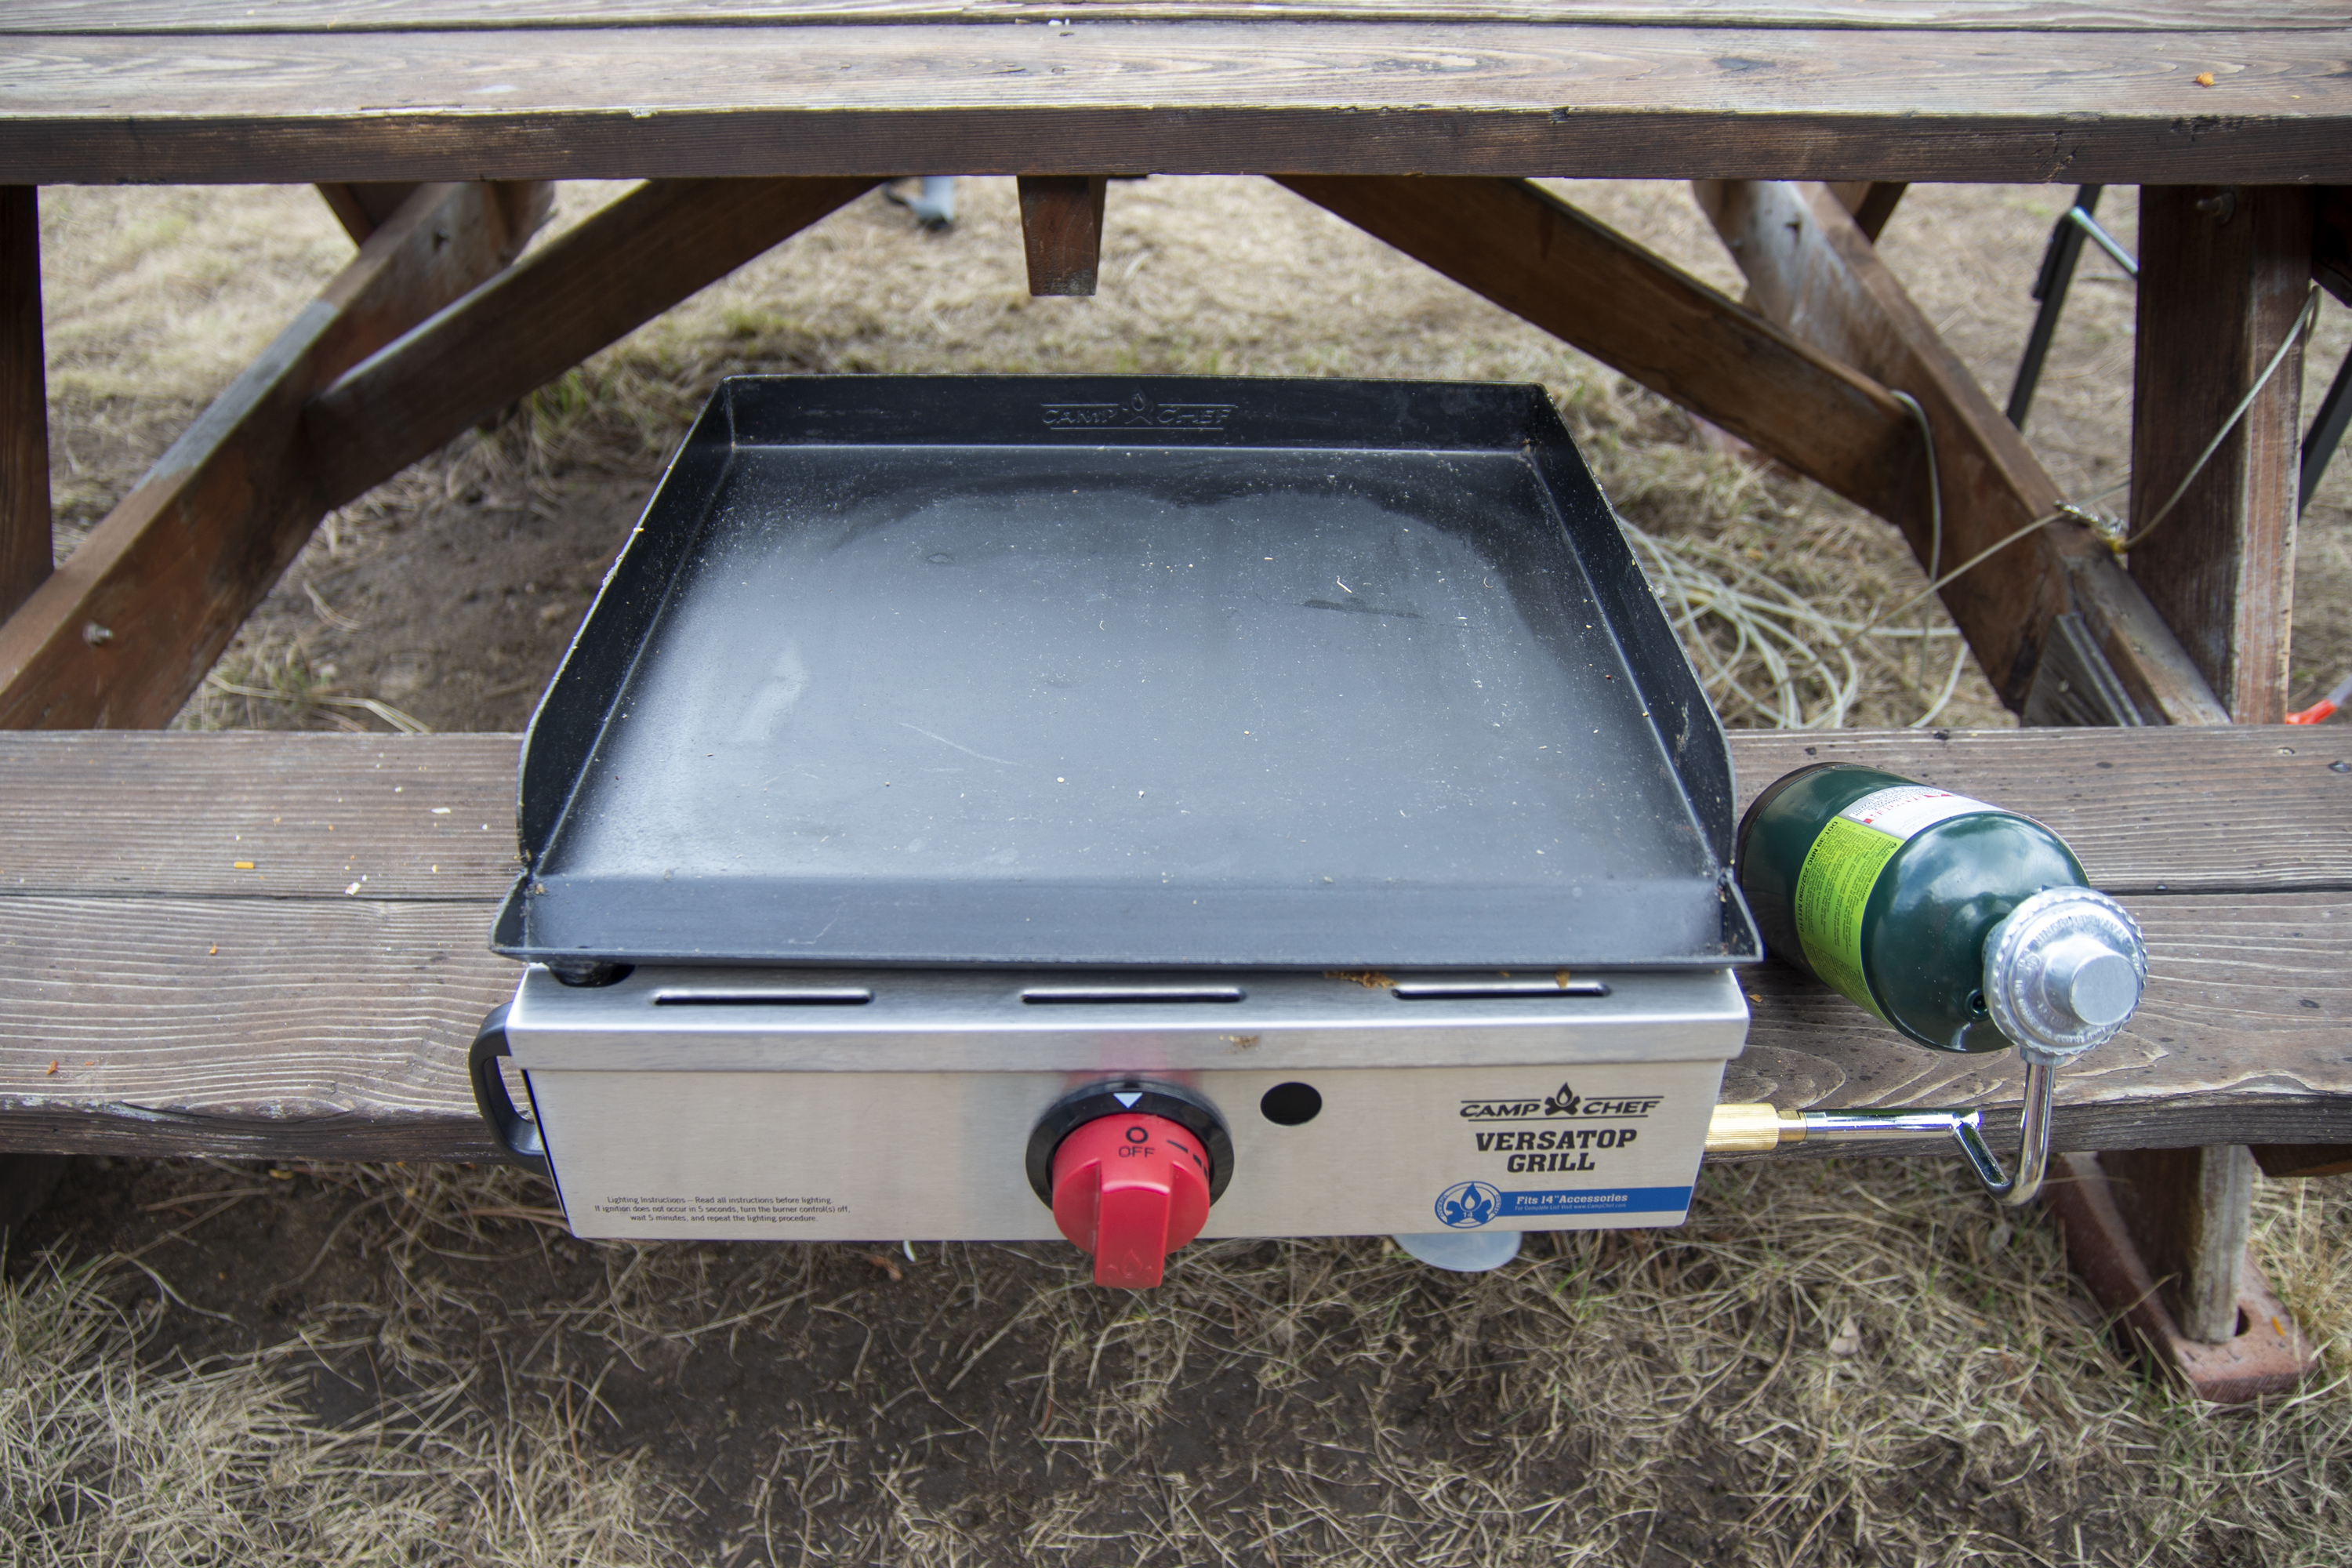 Best camping stoves: camp chef versatop review